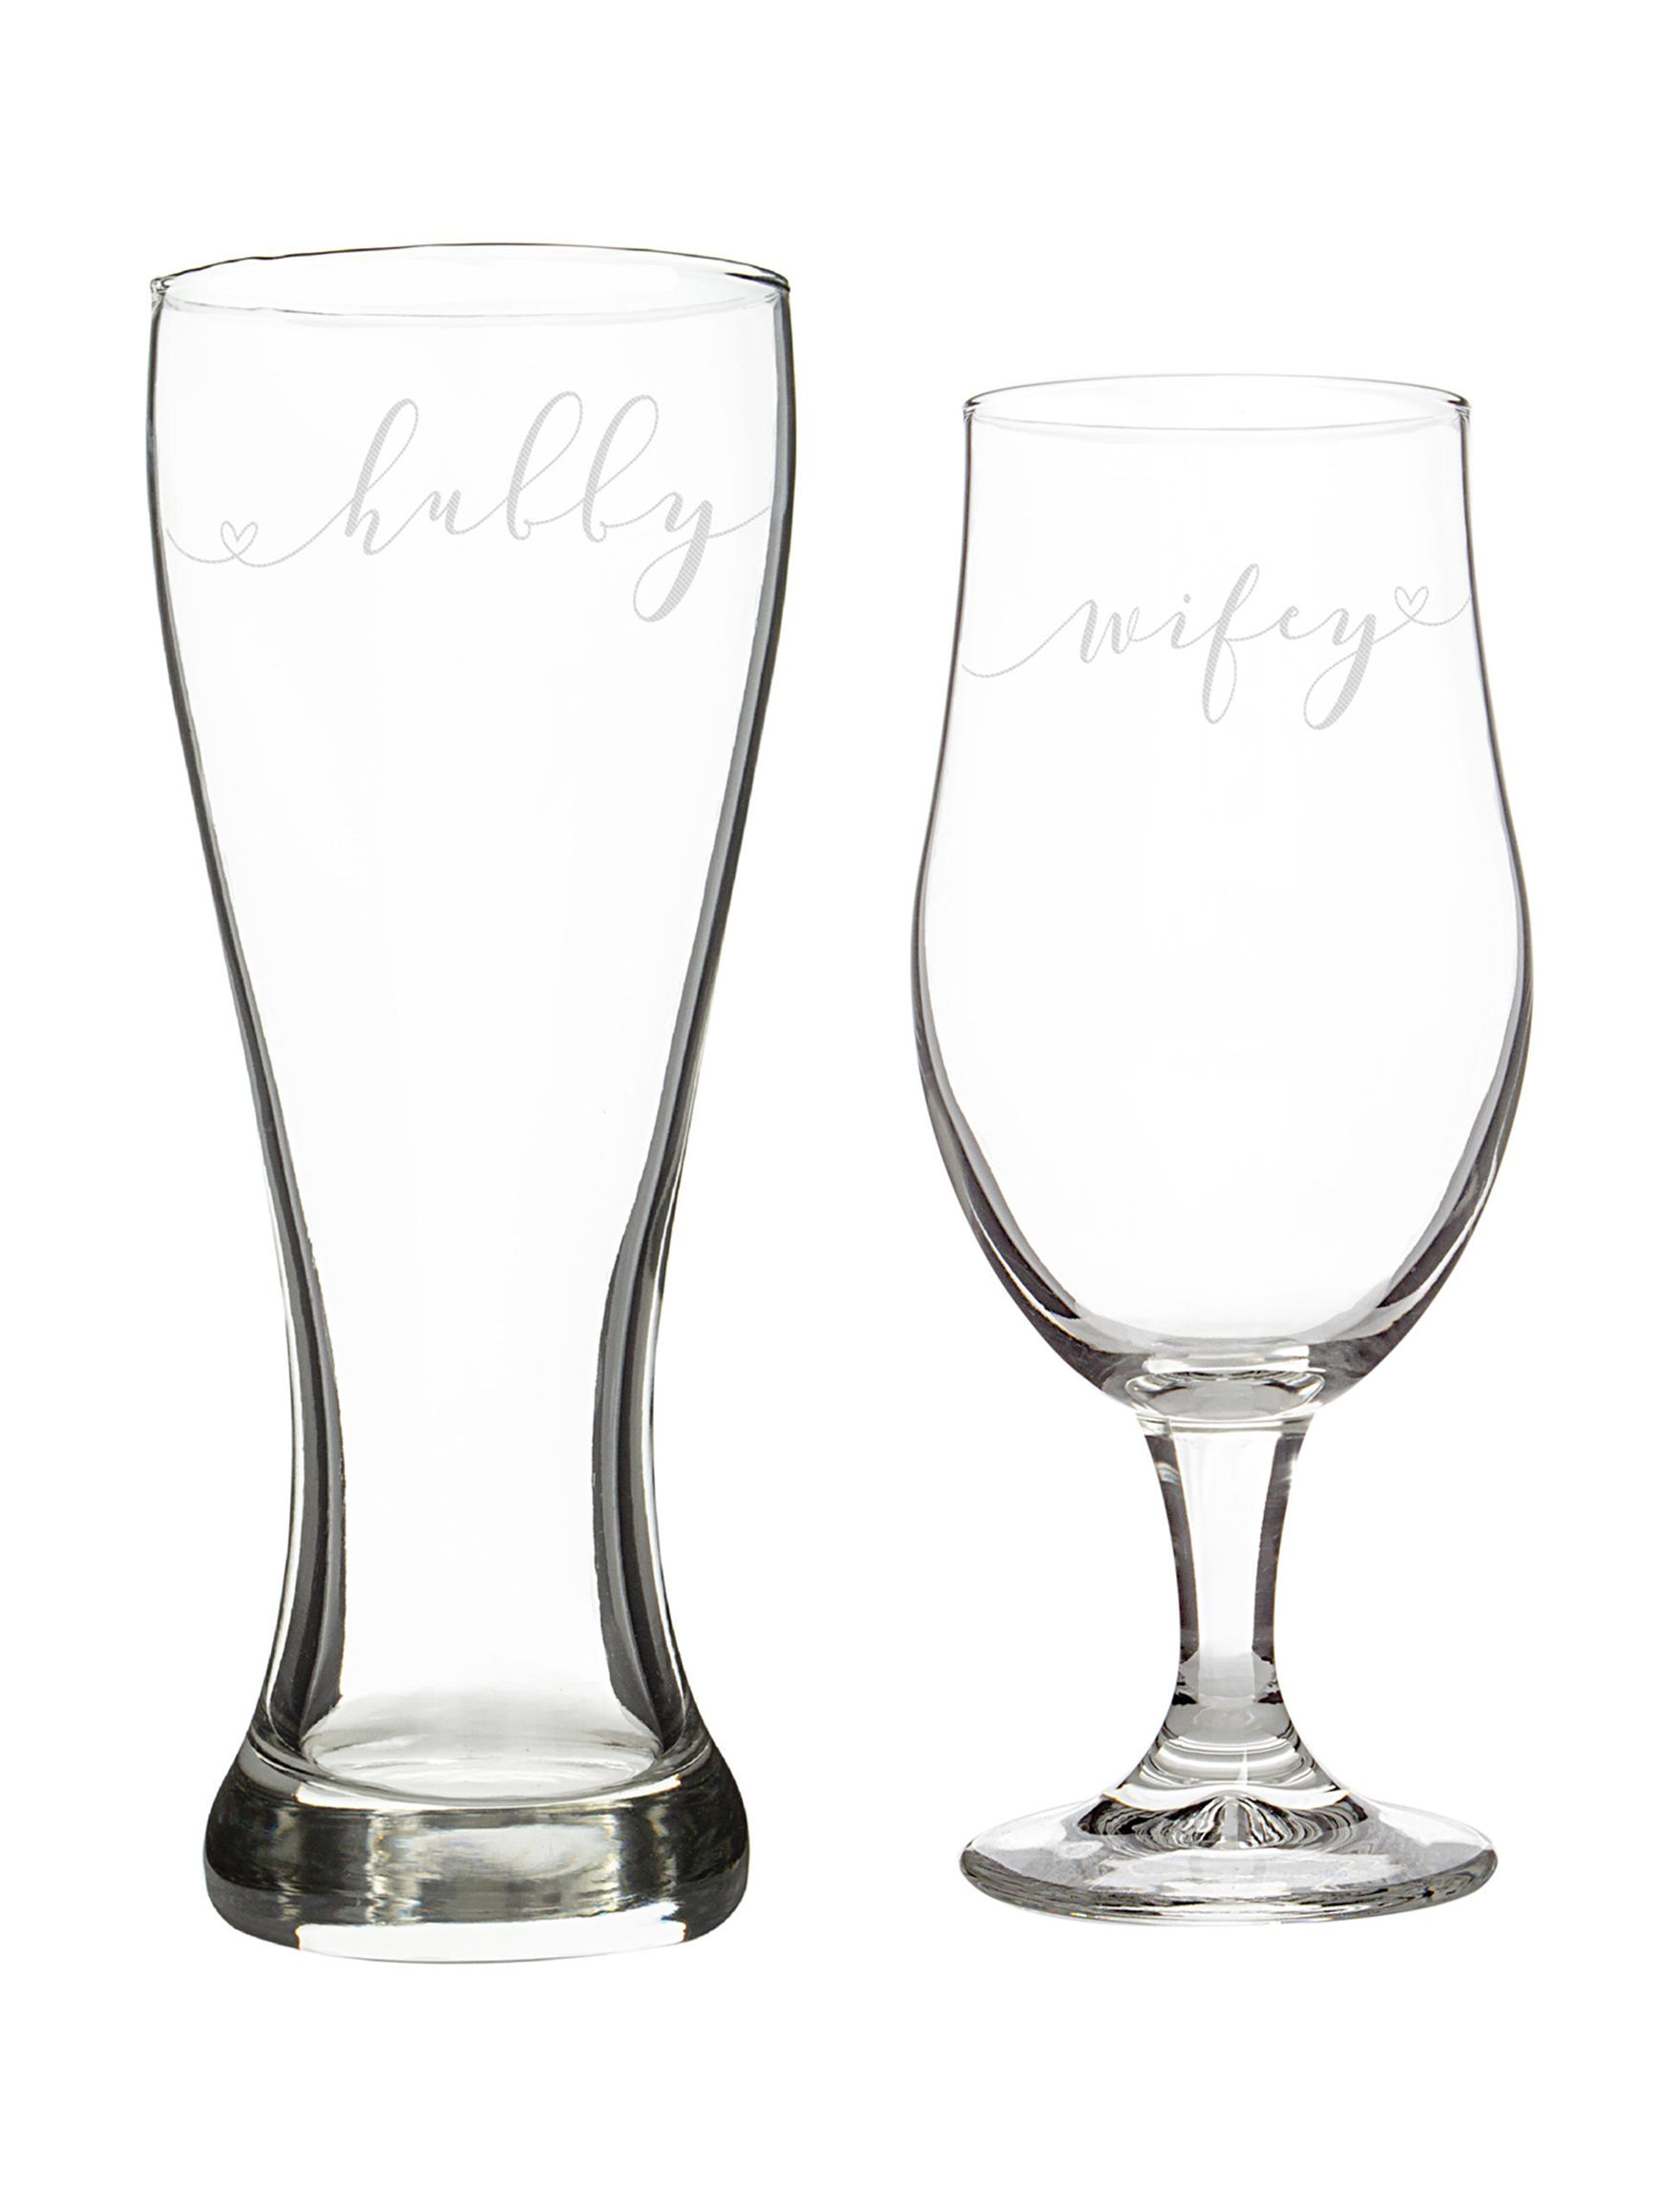 Cathy's Concepts Clear Drinkware Sets Drinkware